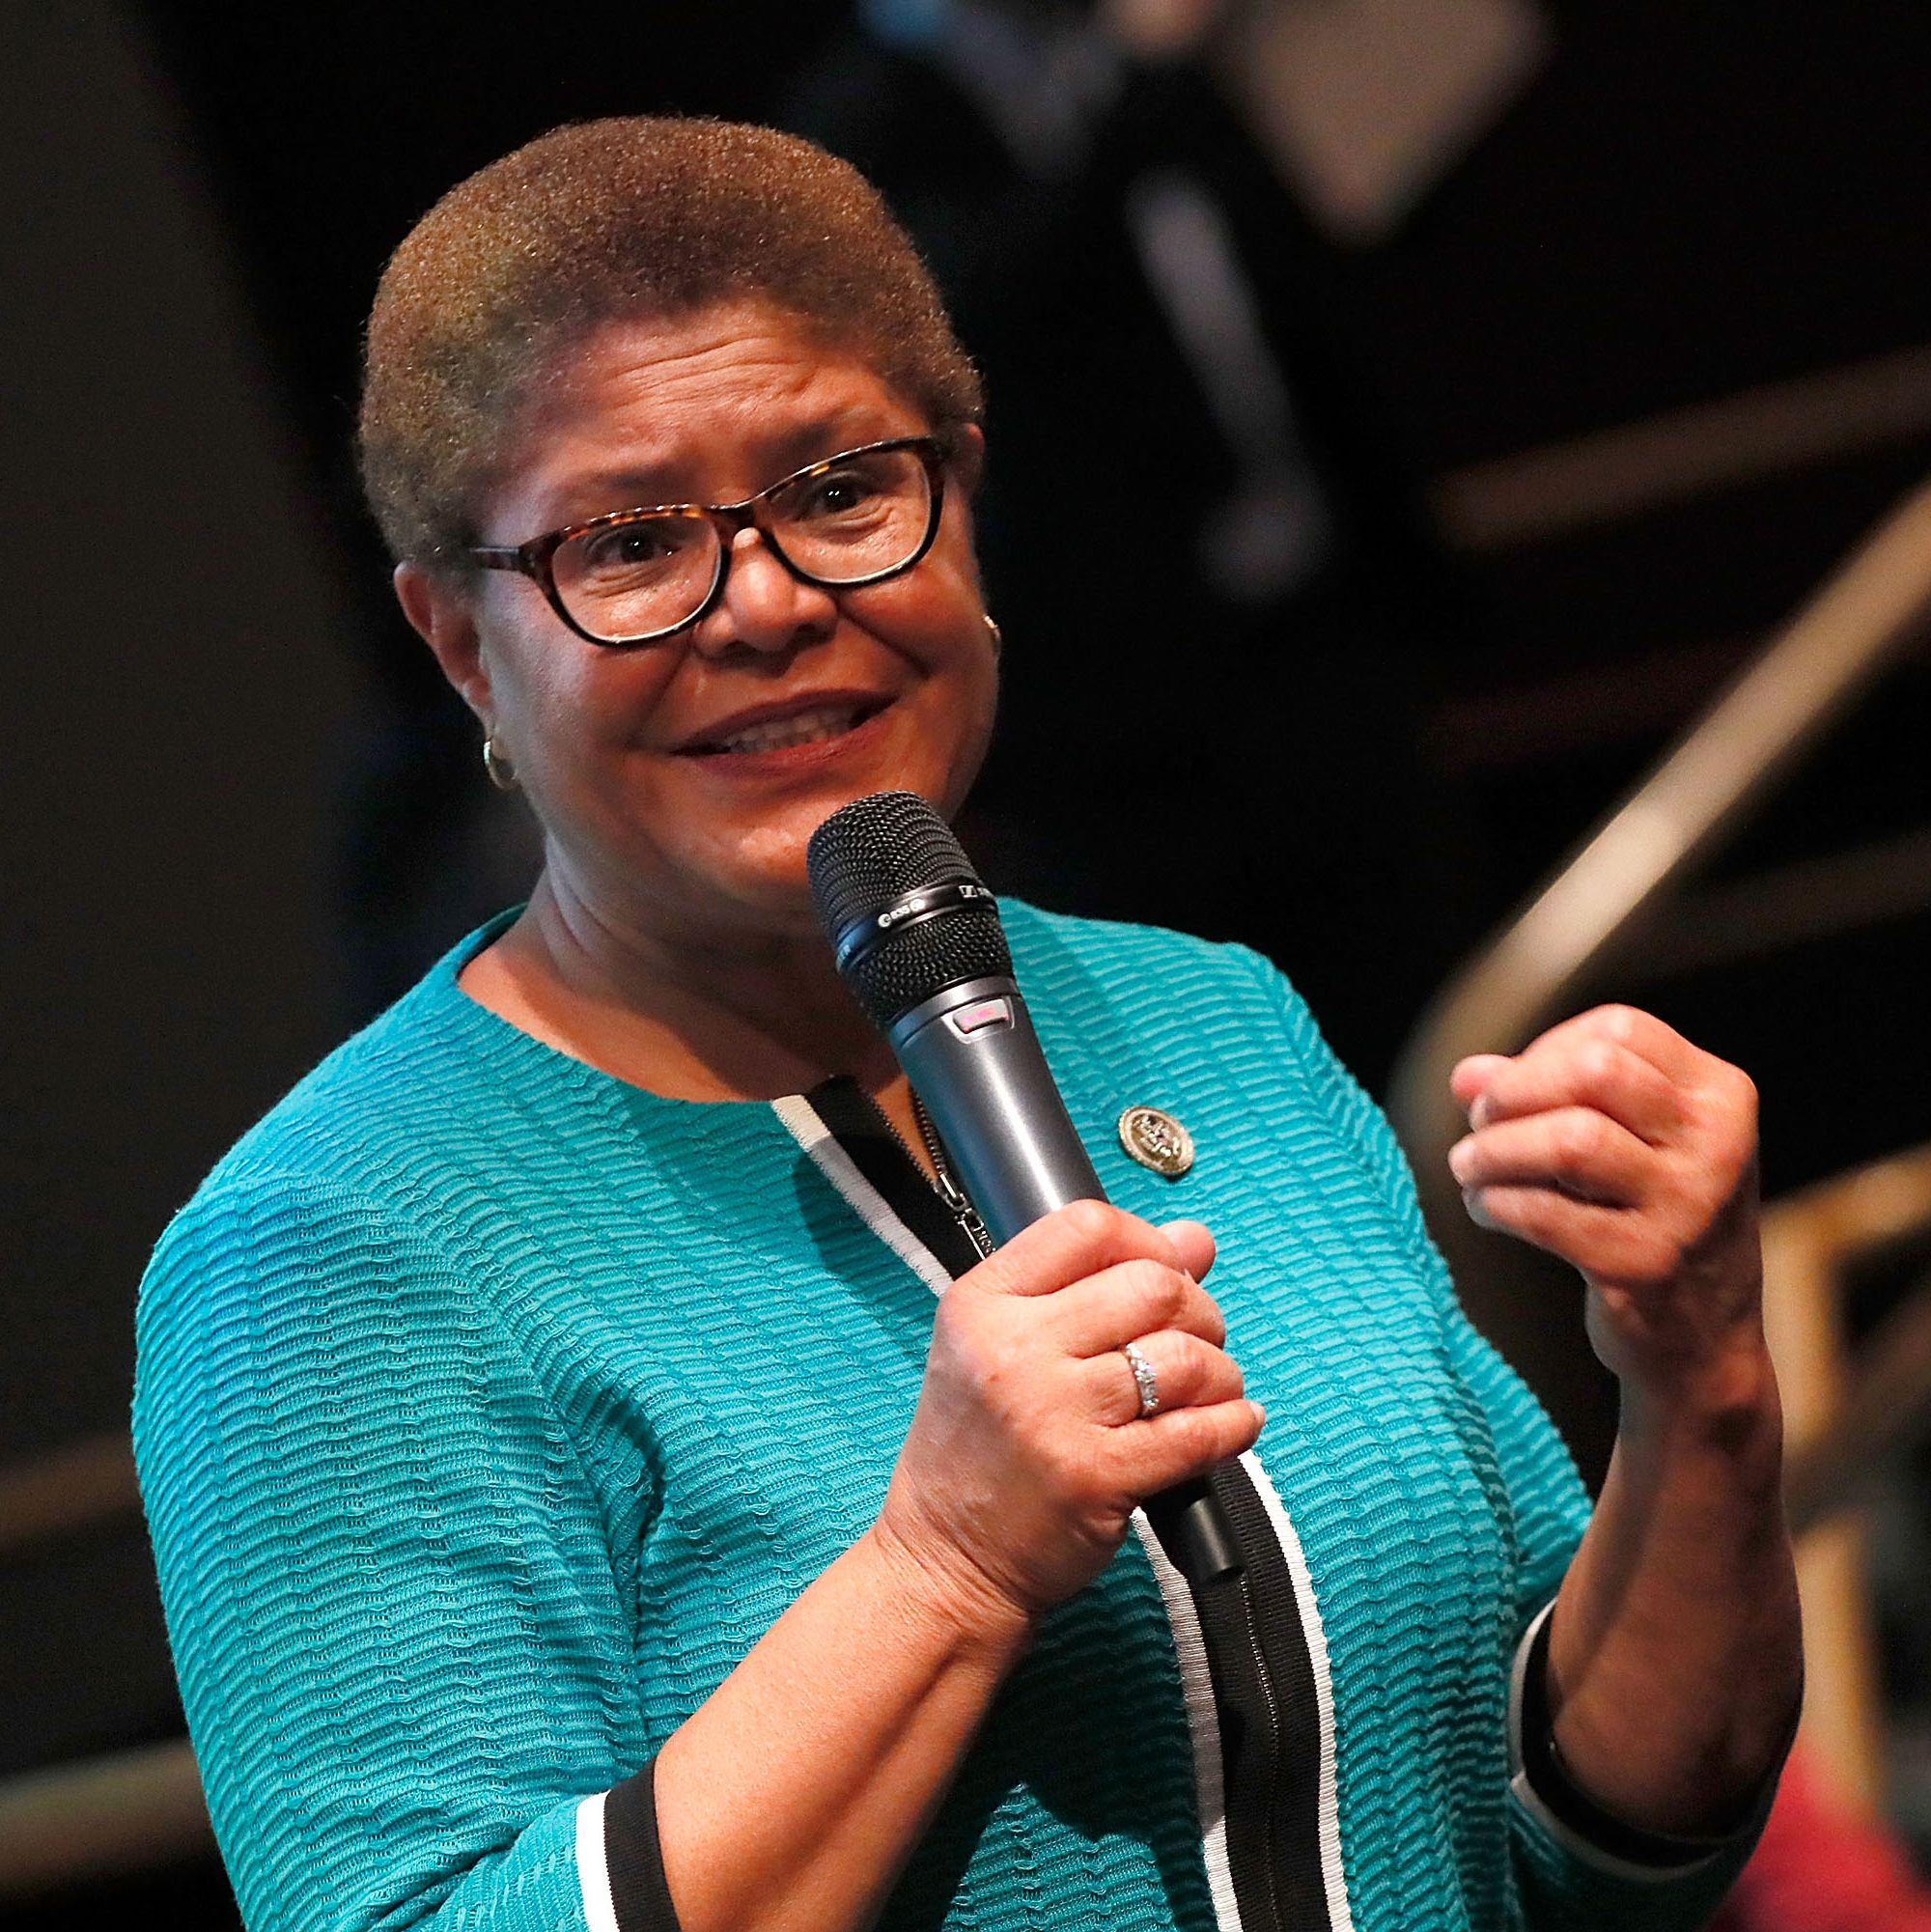 Karen Bass Is Leading the Congressional Black Caucus Into the Future